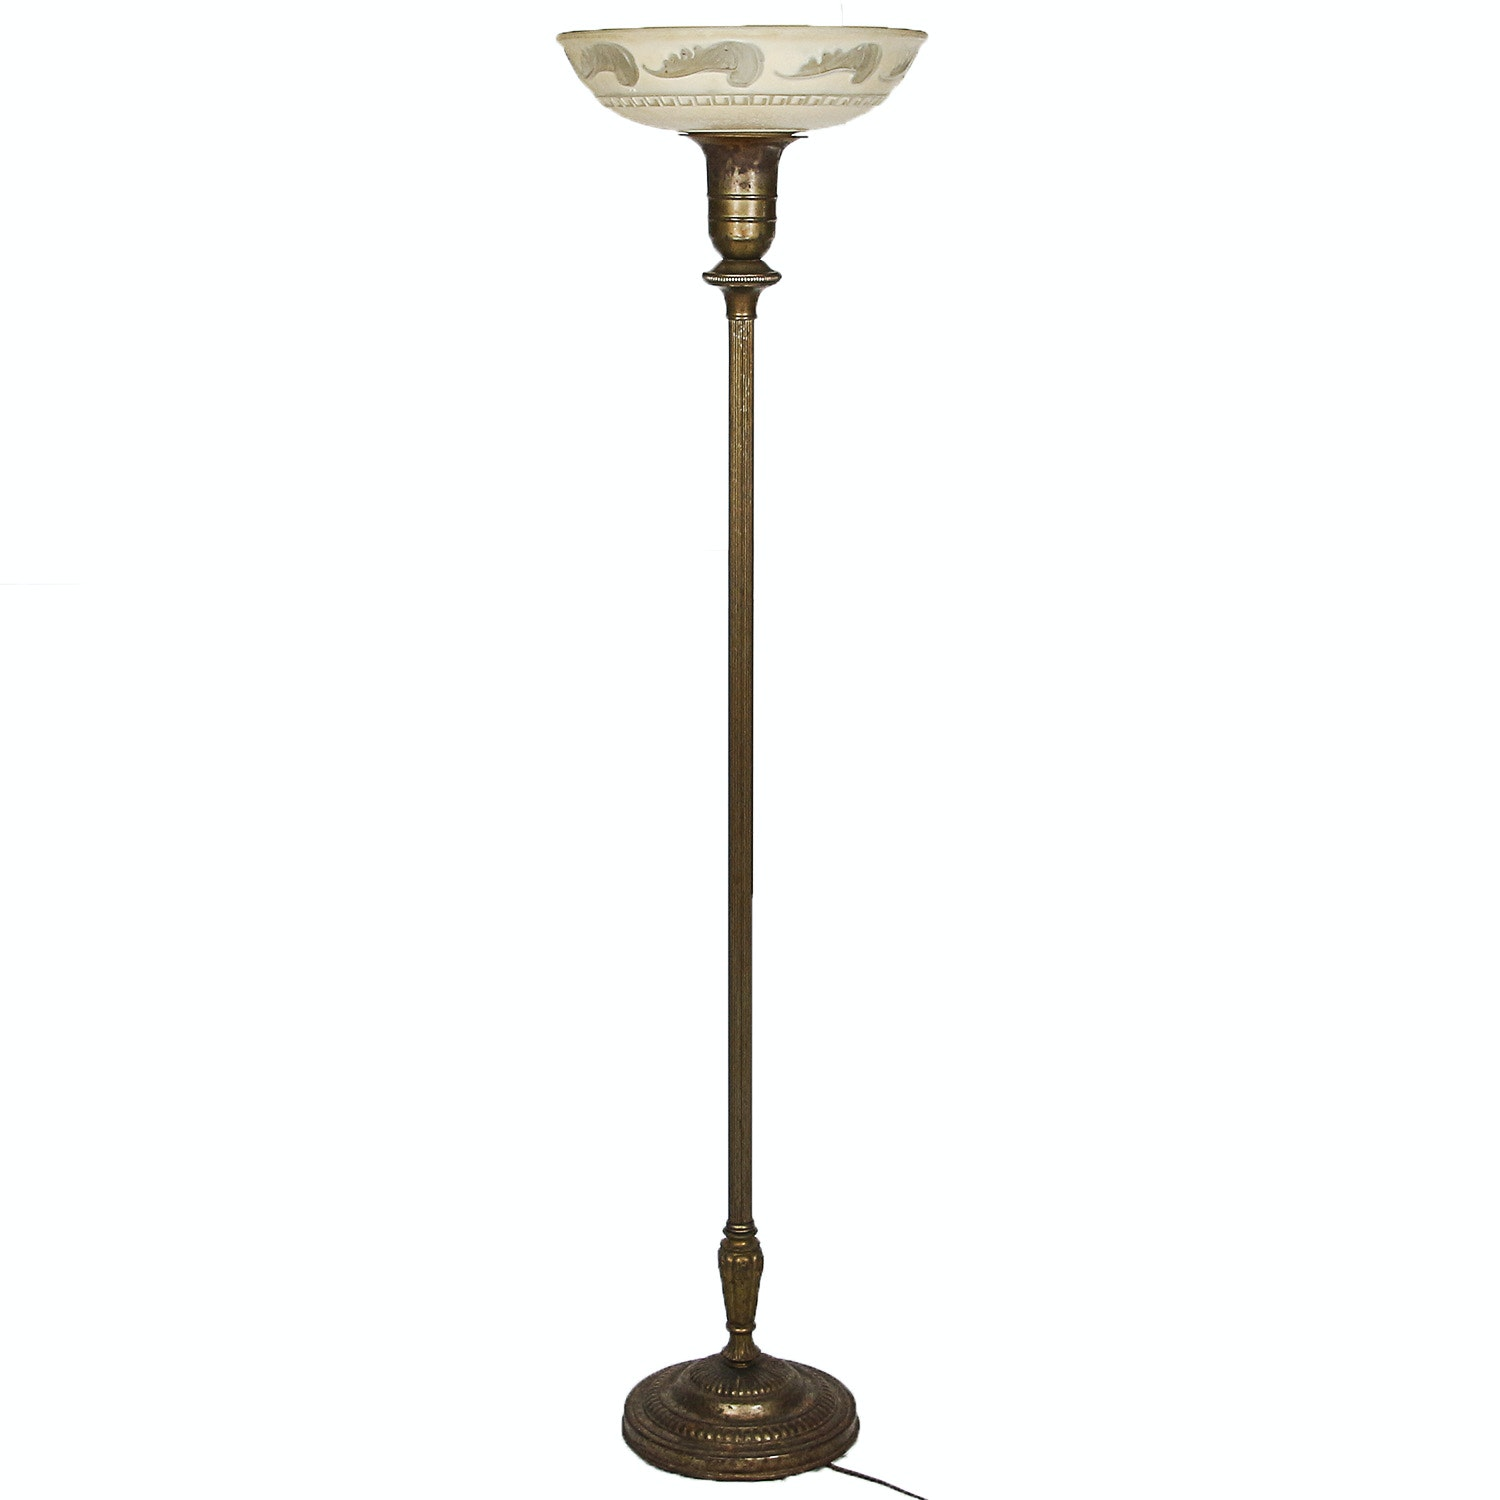 Early to Mid 20th Century Brass Tone Torchiere with Patterned Tinted Shade